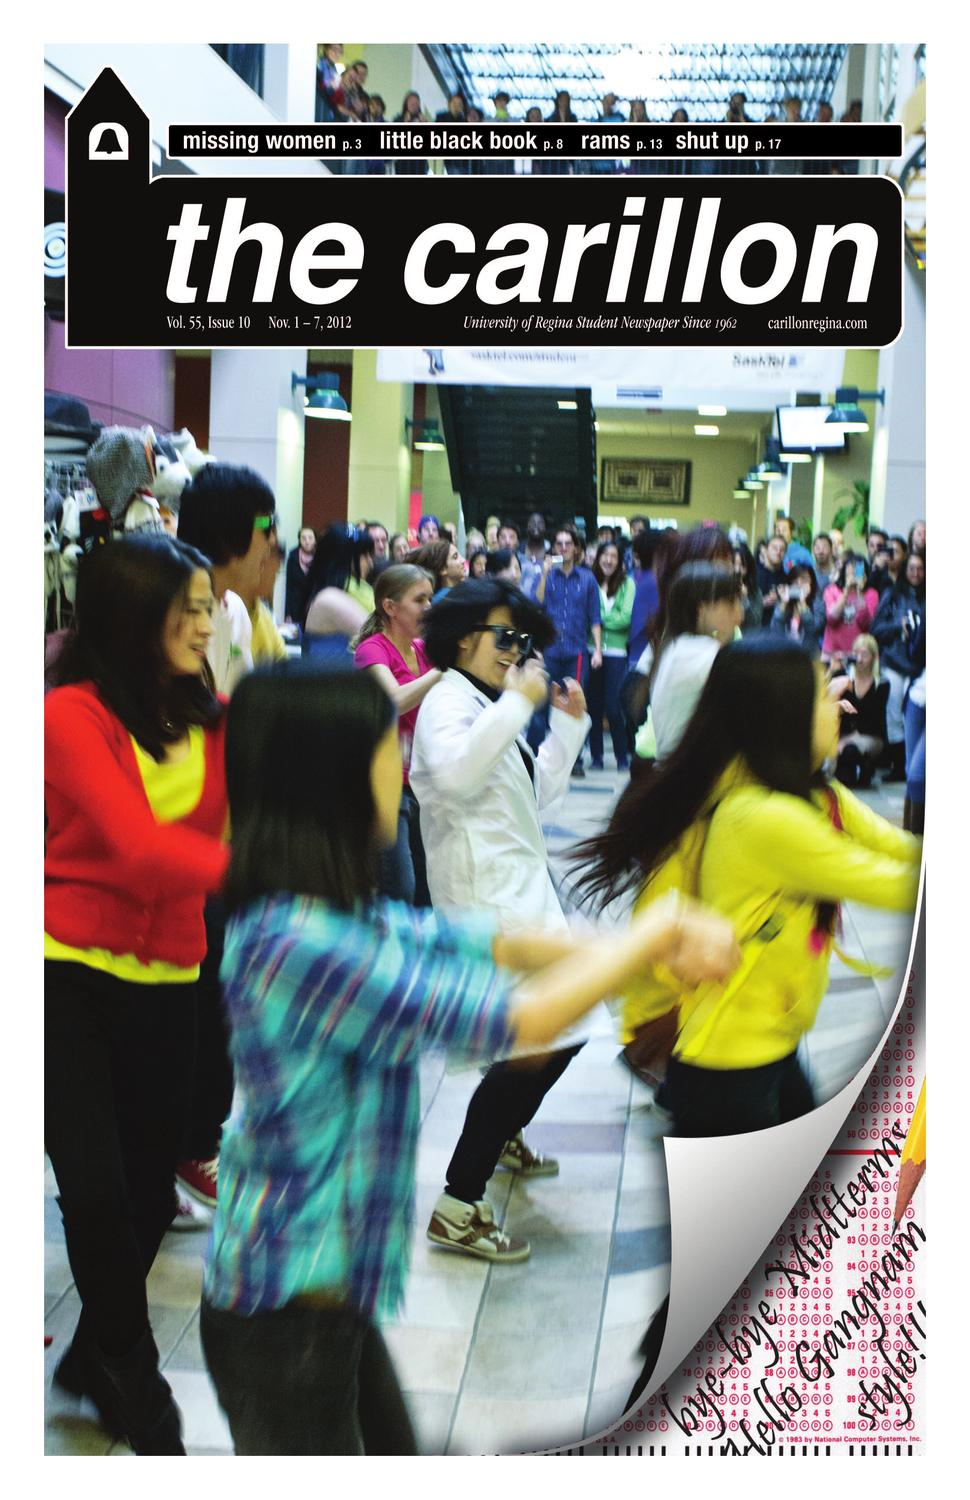 Nov1final by The Carillon Newspaper - issuu